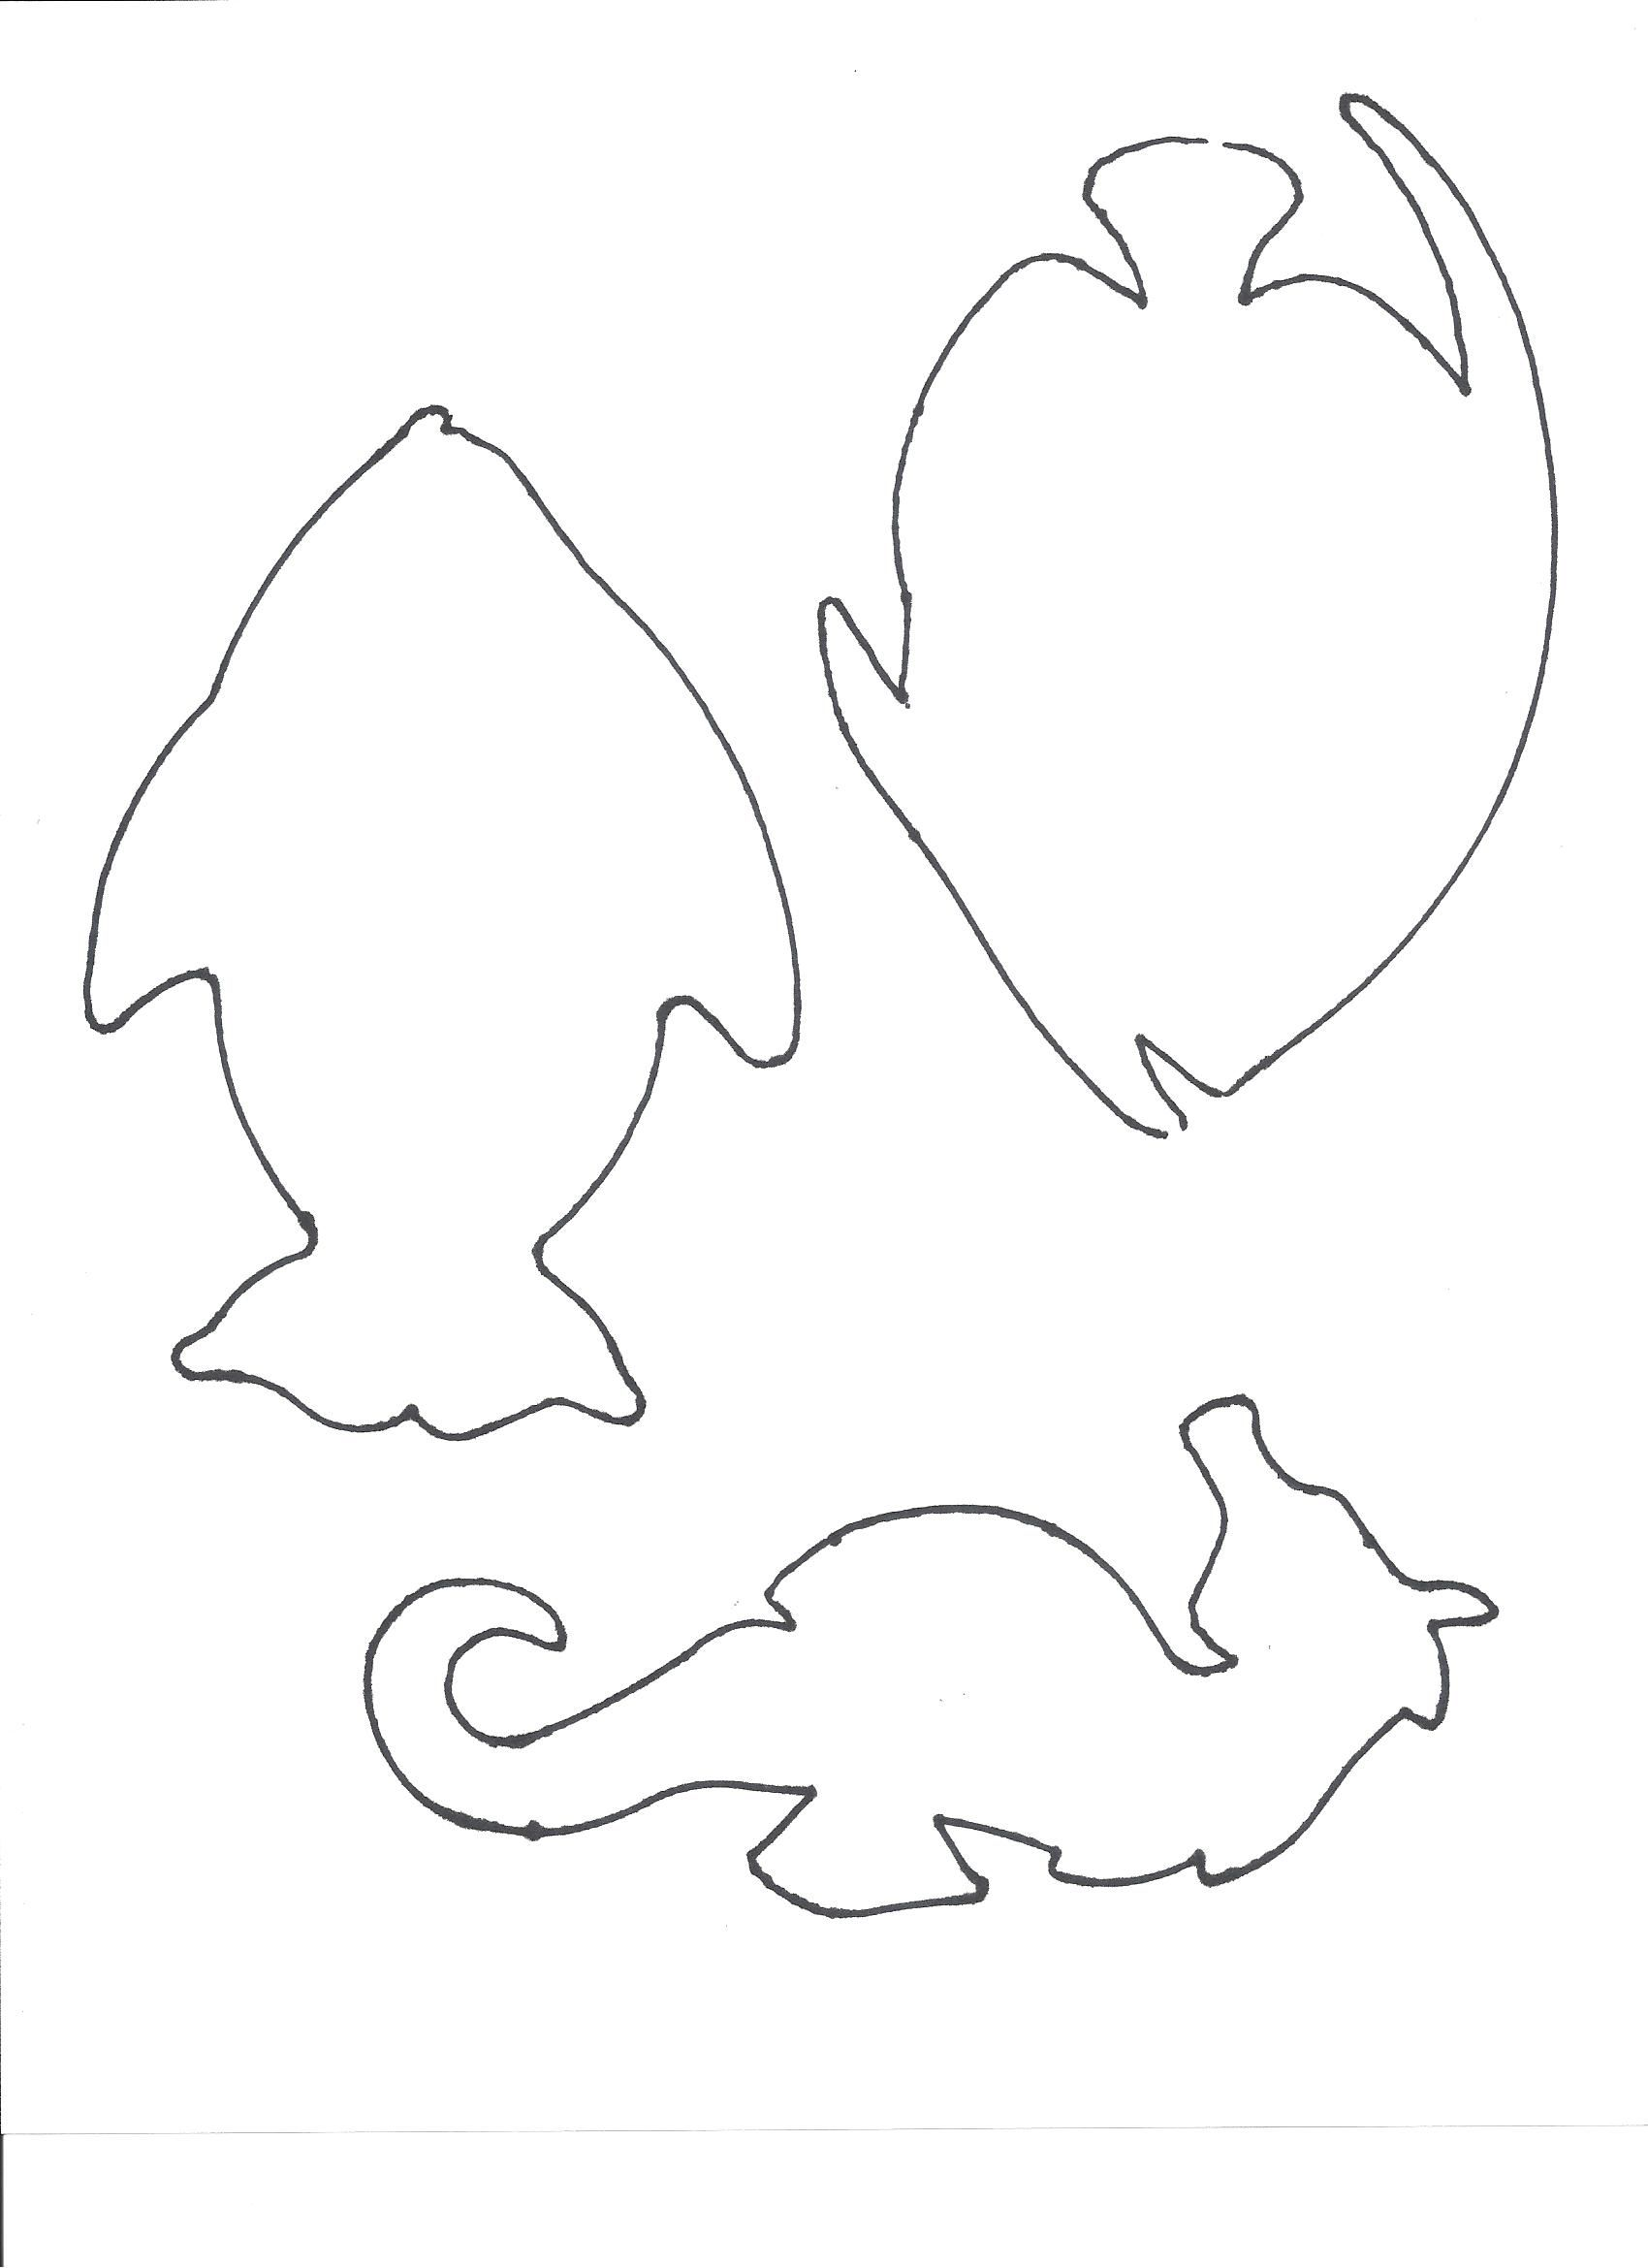 Trunk Or Treat Trunk Decor Fish Template Print On Some